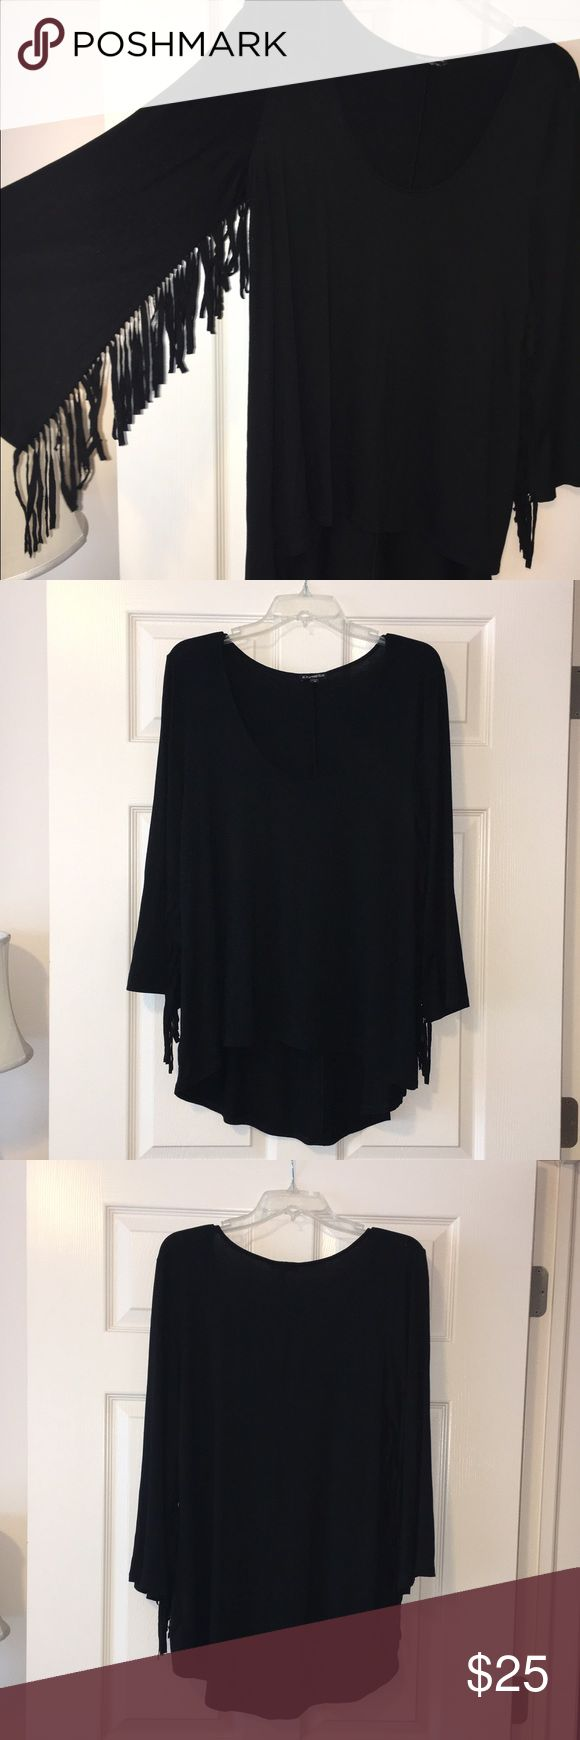 Black high low top with fringe on sleeves | Fashion design ...